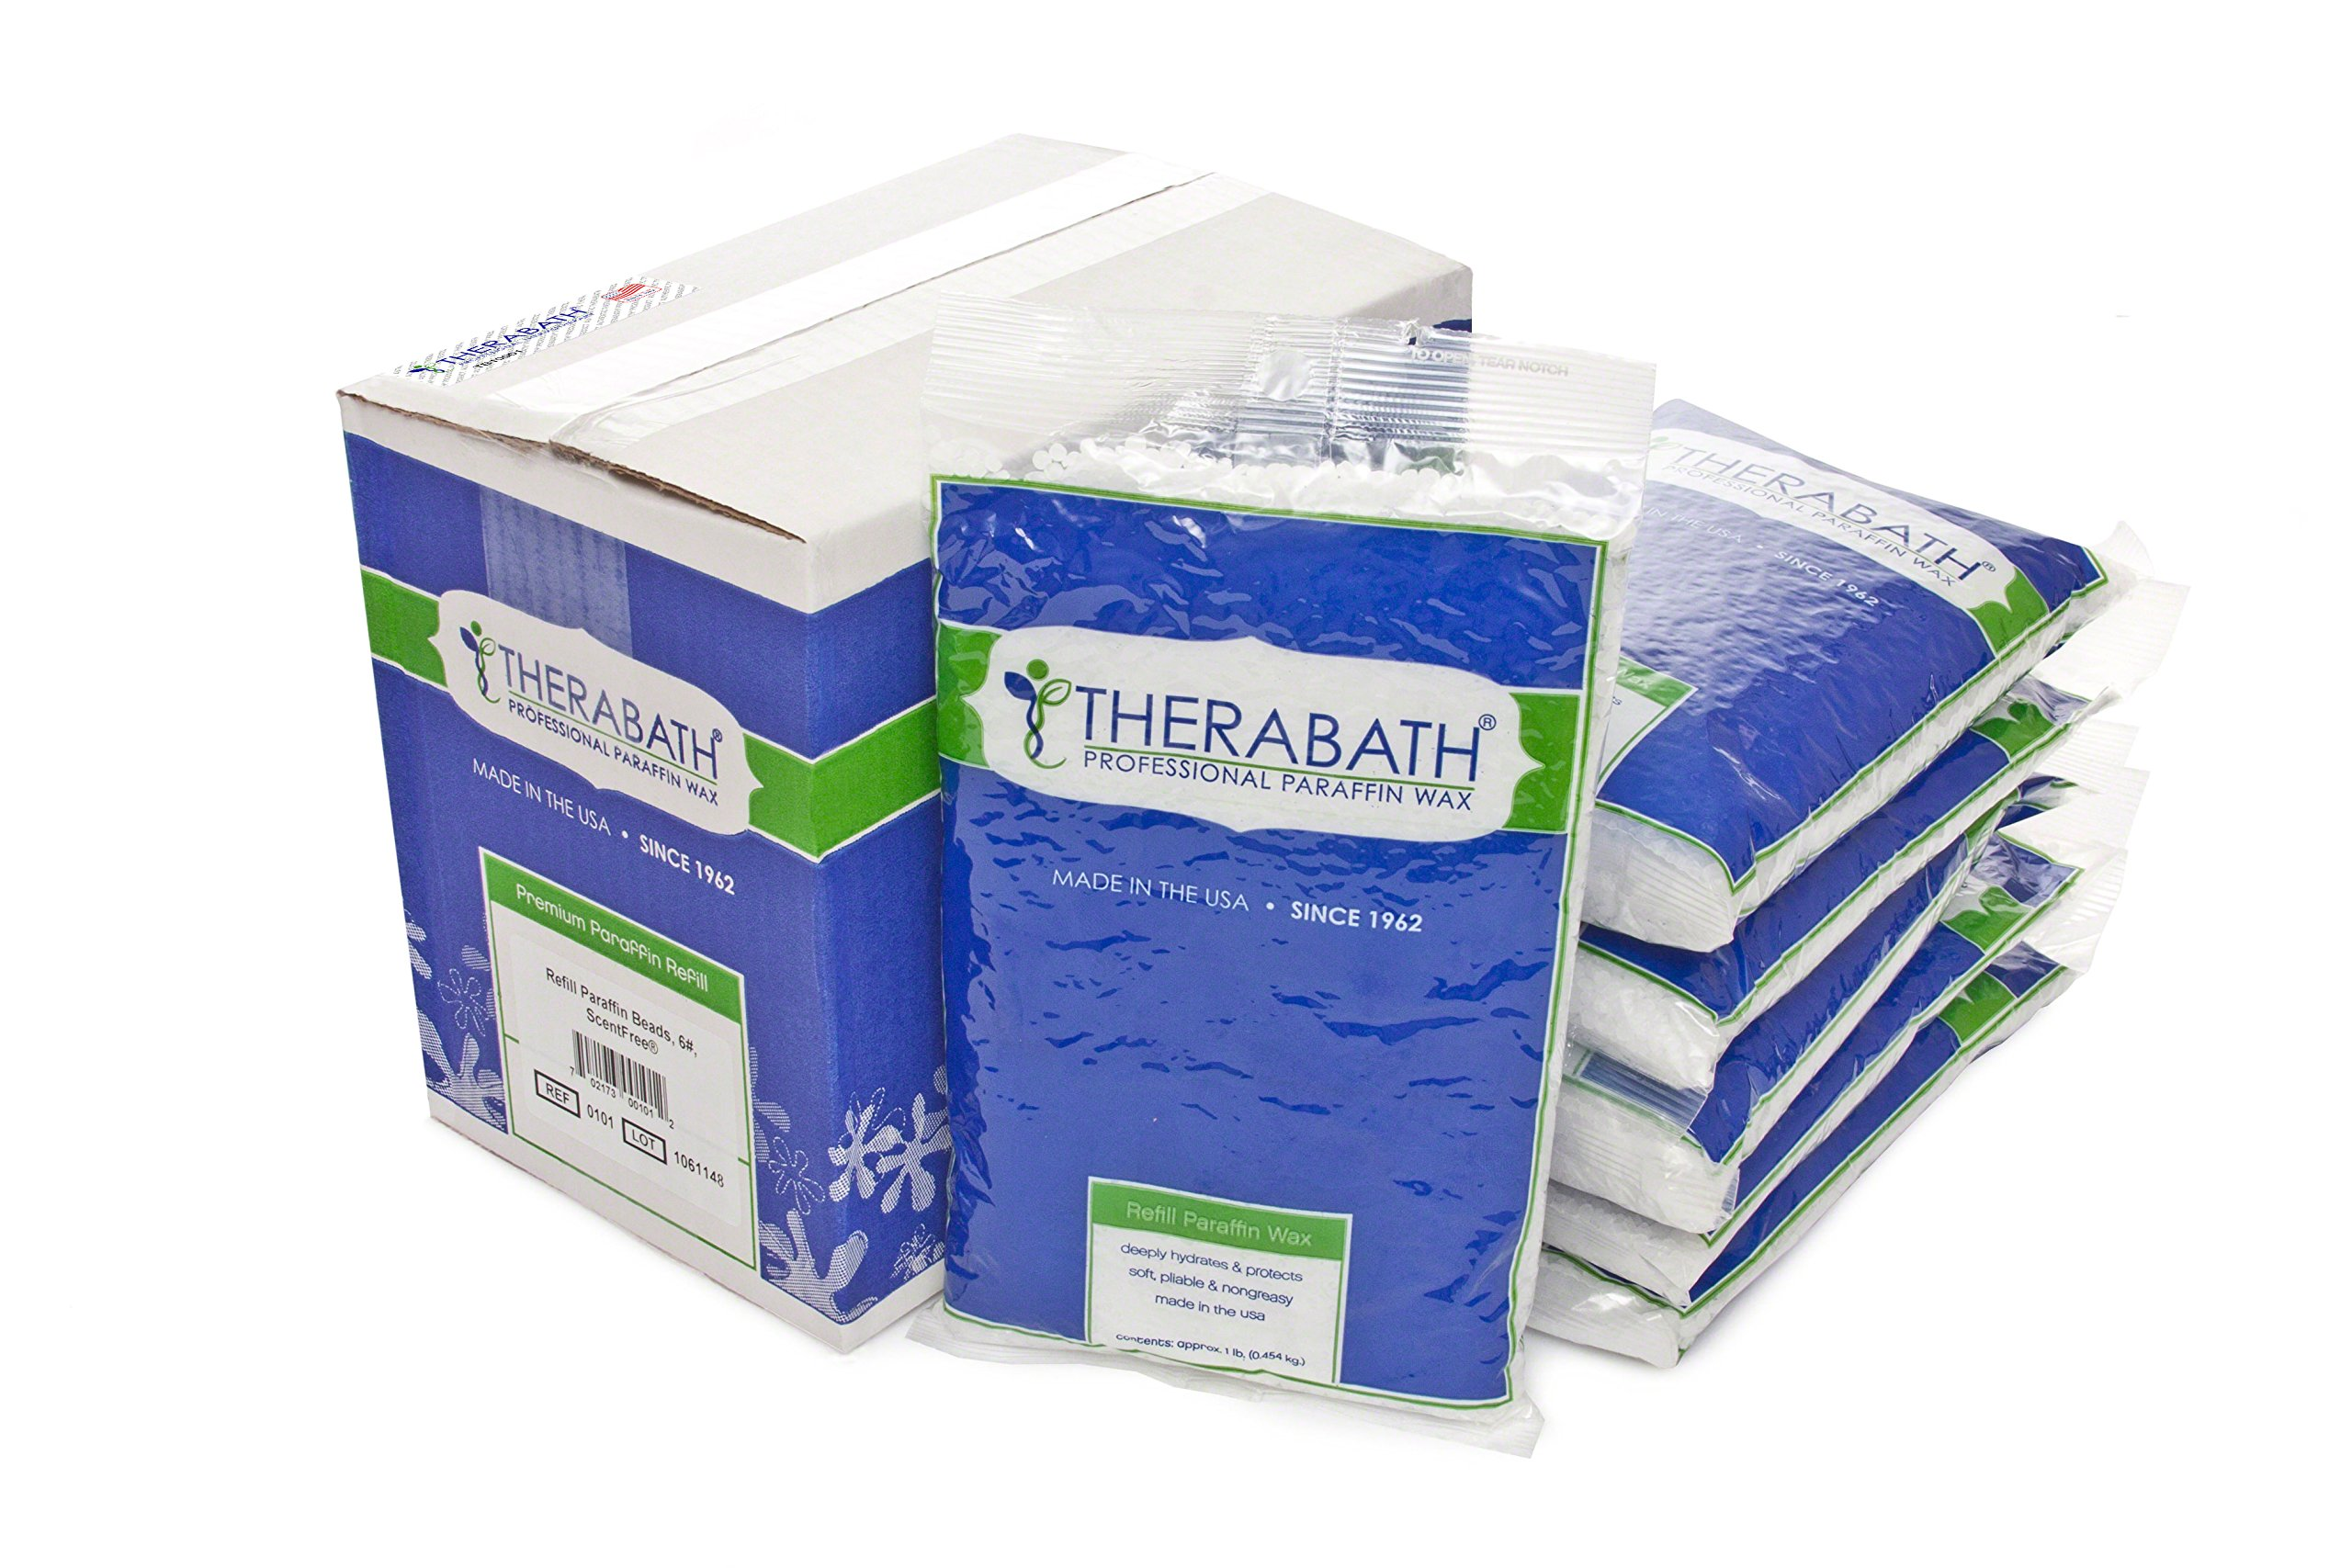 Therabath Paraffin Wax Refill - Use To Relieve Arthitis Pain and Stiff Muscles - Deeply Hydrates and Protects - 6 lbs (ScentFree)